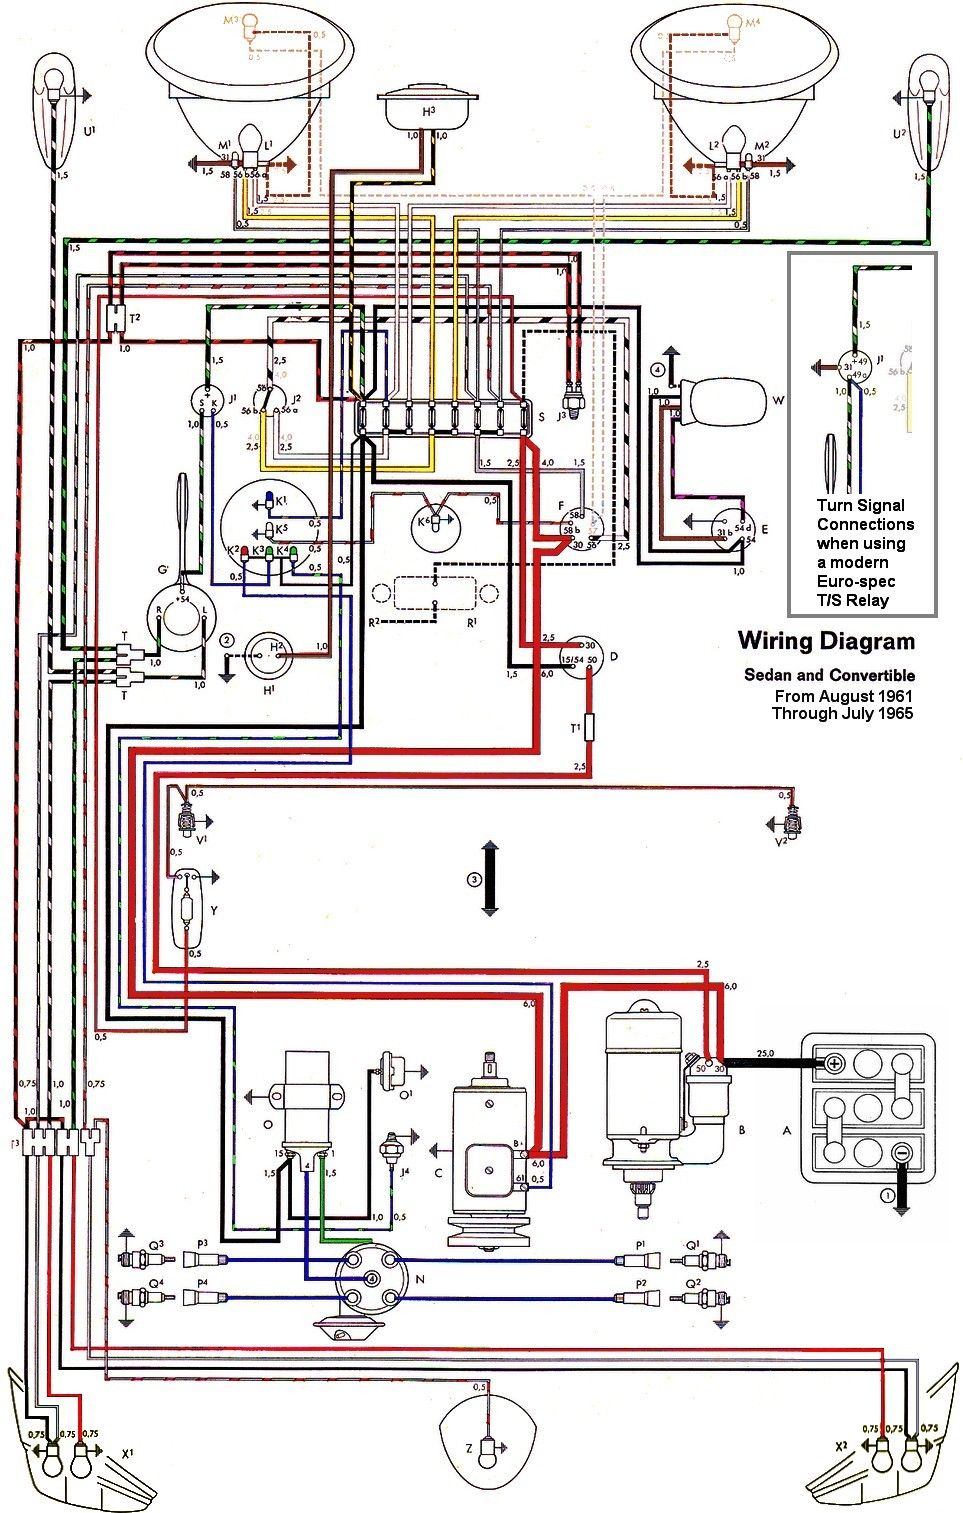 vw thing engine diagram wiring diagram vw beetle sedan and convertible 1961 1965 vw wiring diagram vw beetle sedan and